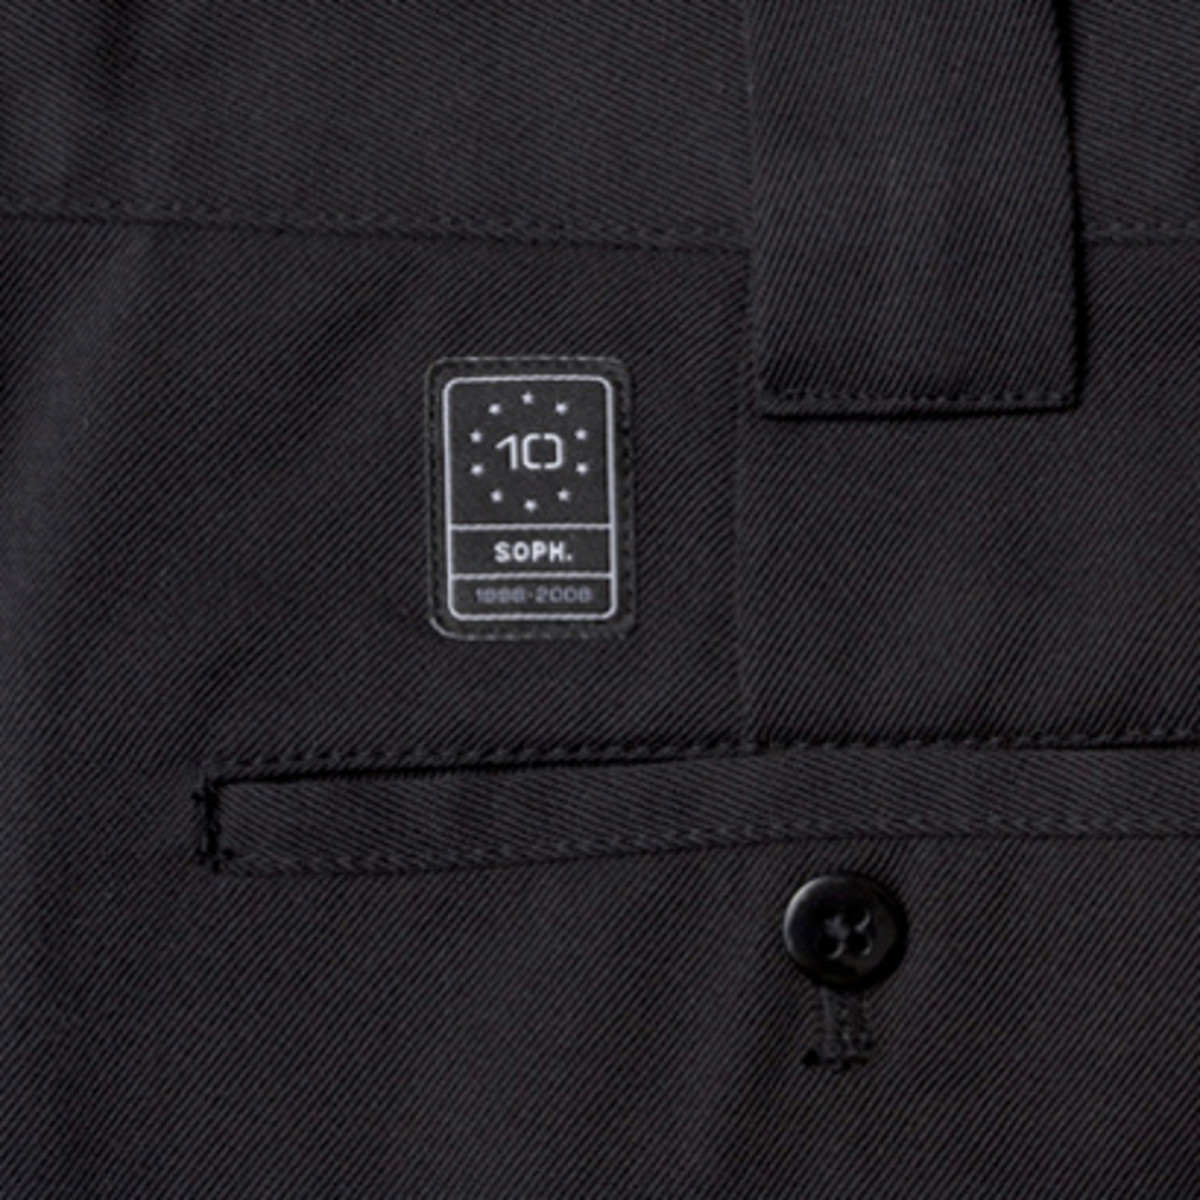 SOPHNET. (SOPH.) x Dickies - SOPHNET. 10th Anniversary 874 Lowrizer